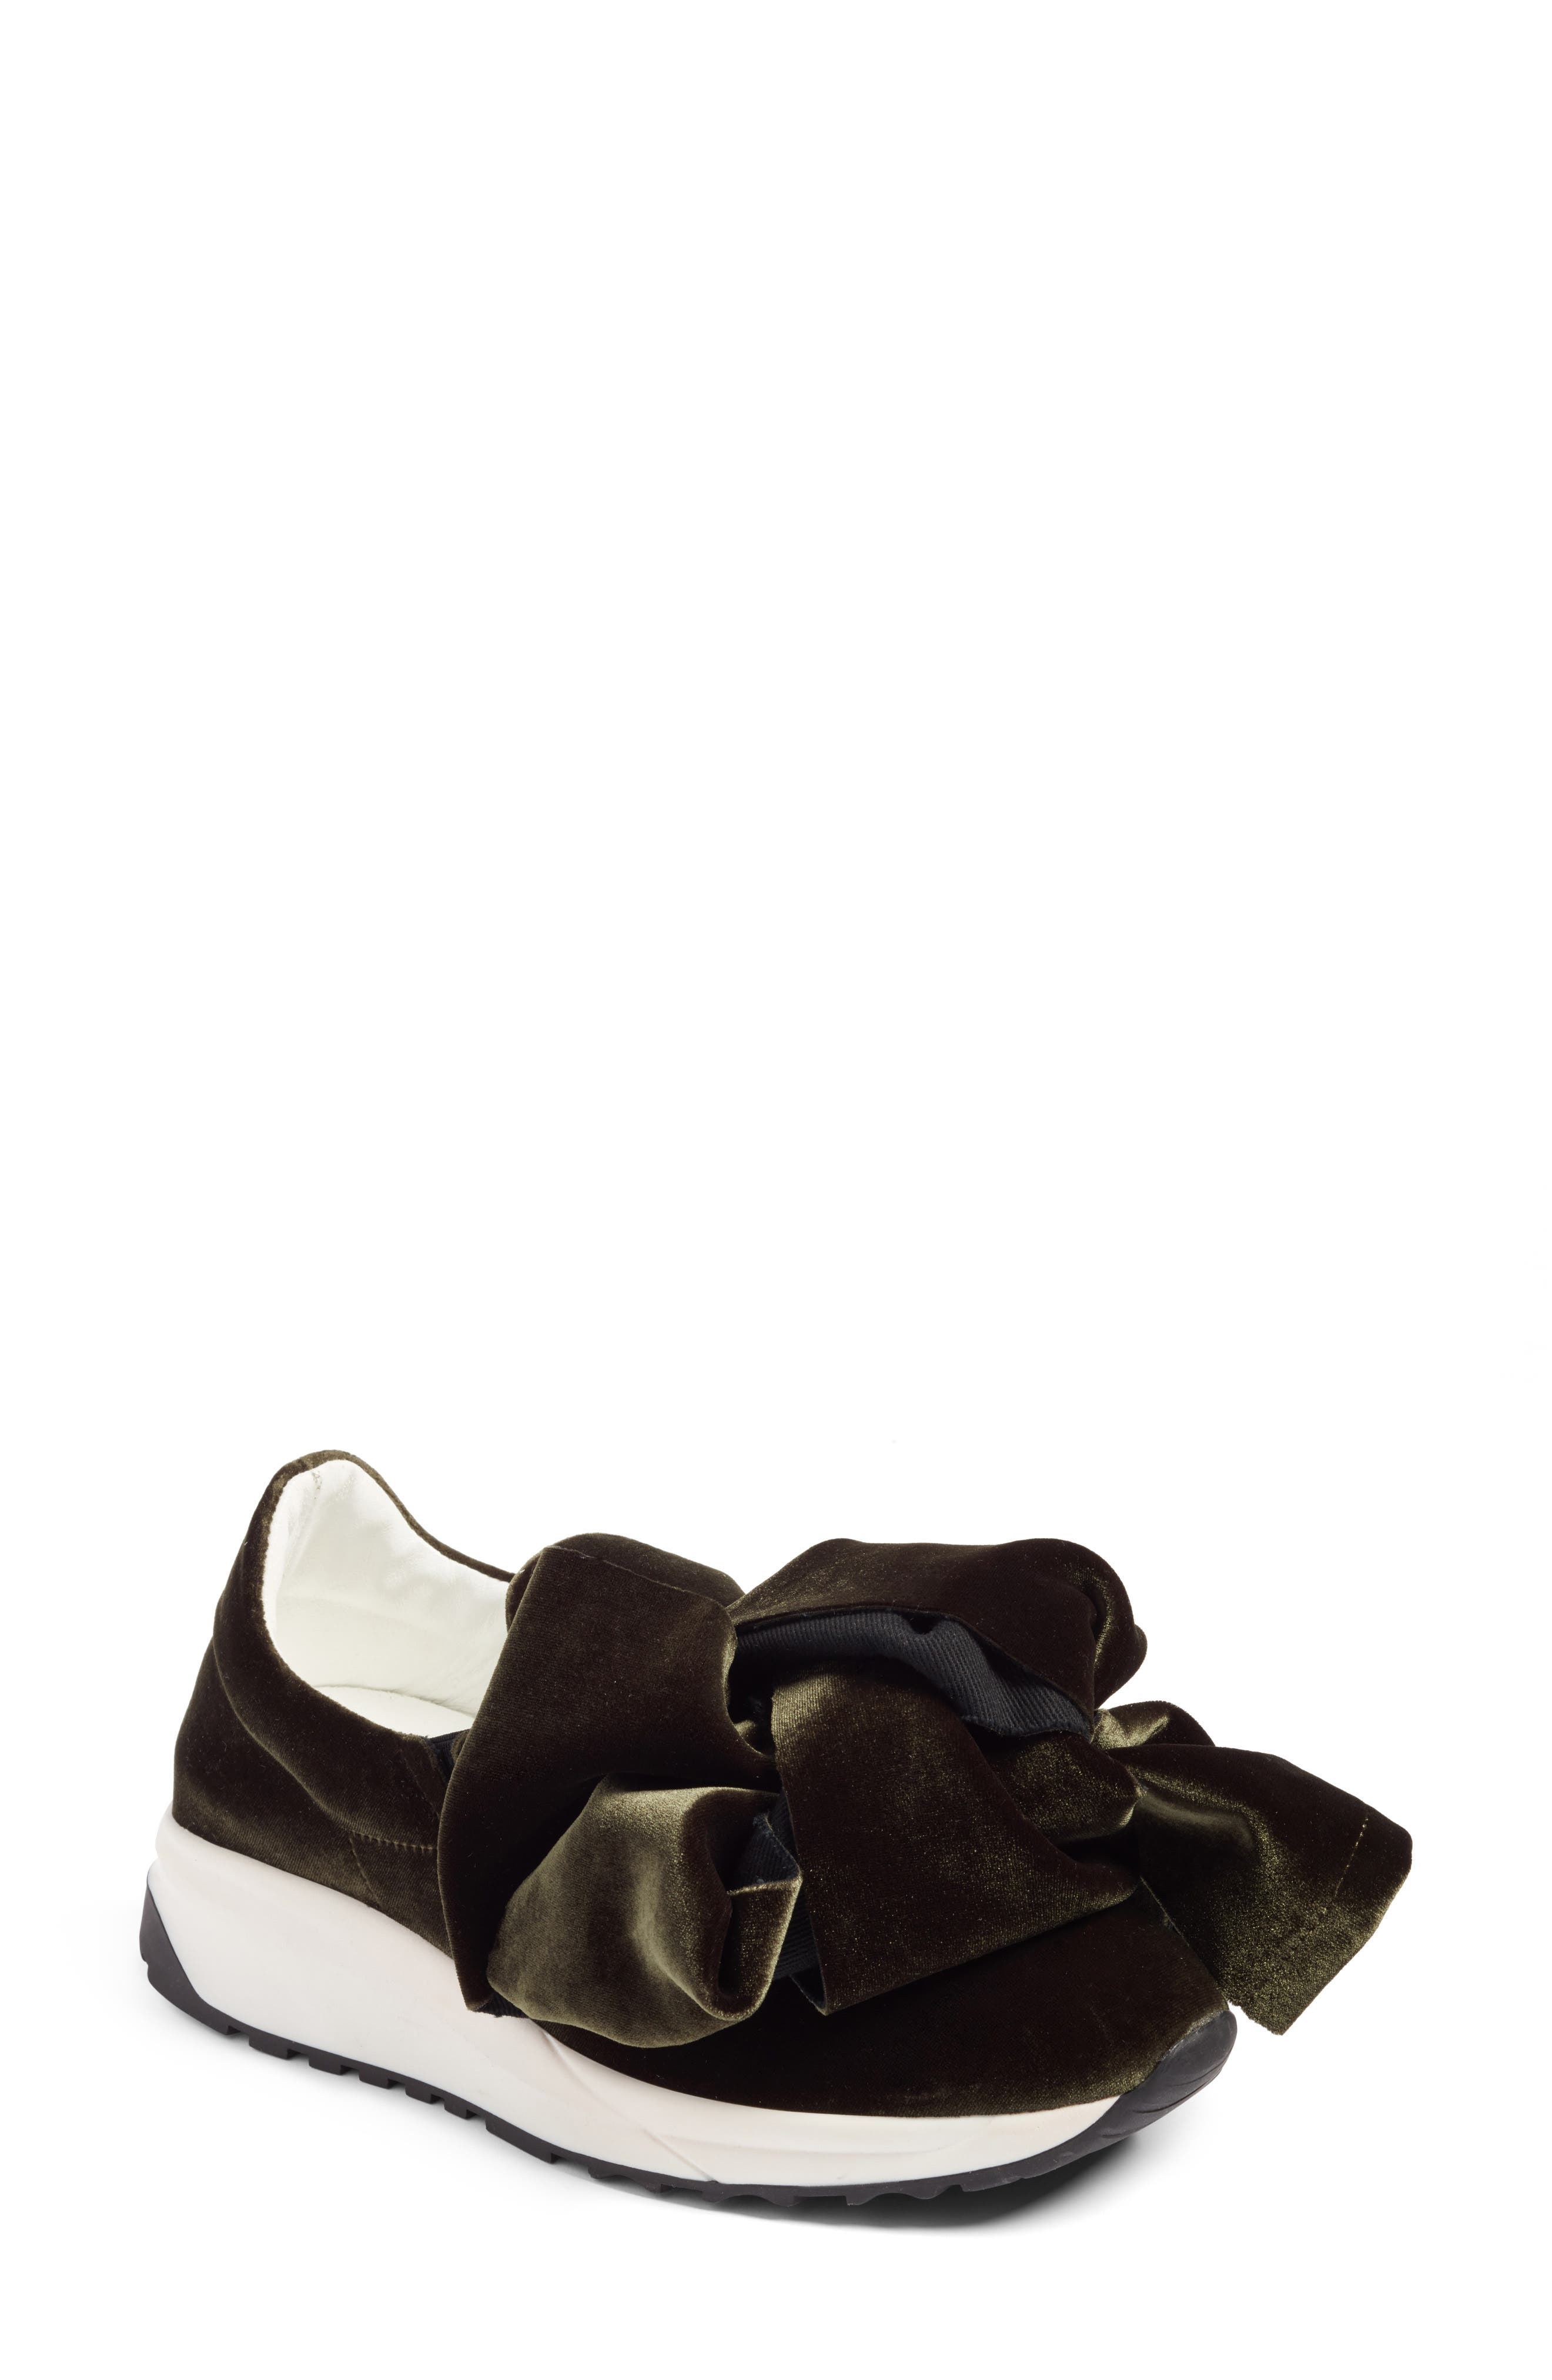 Knotted Slip-On Sneaker,                         Main,                         color, 300